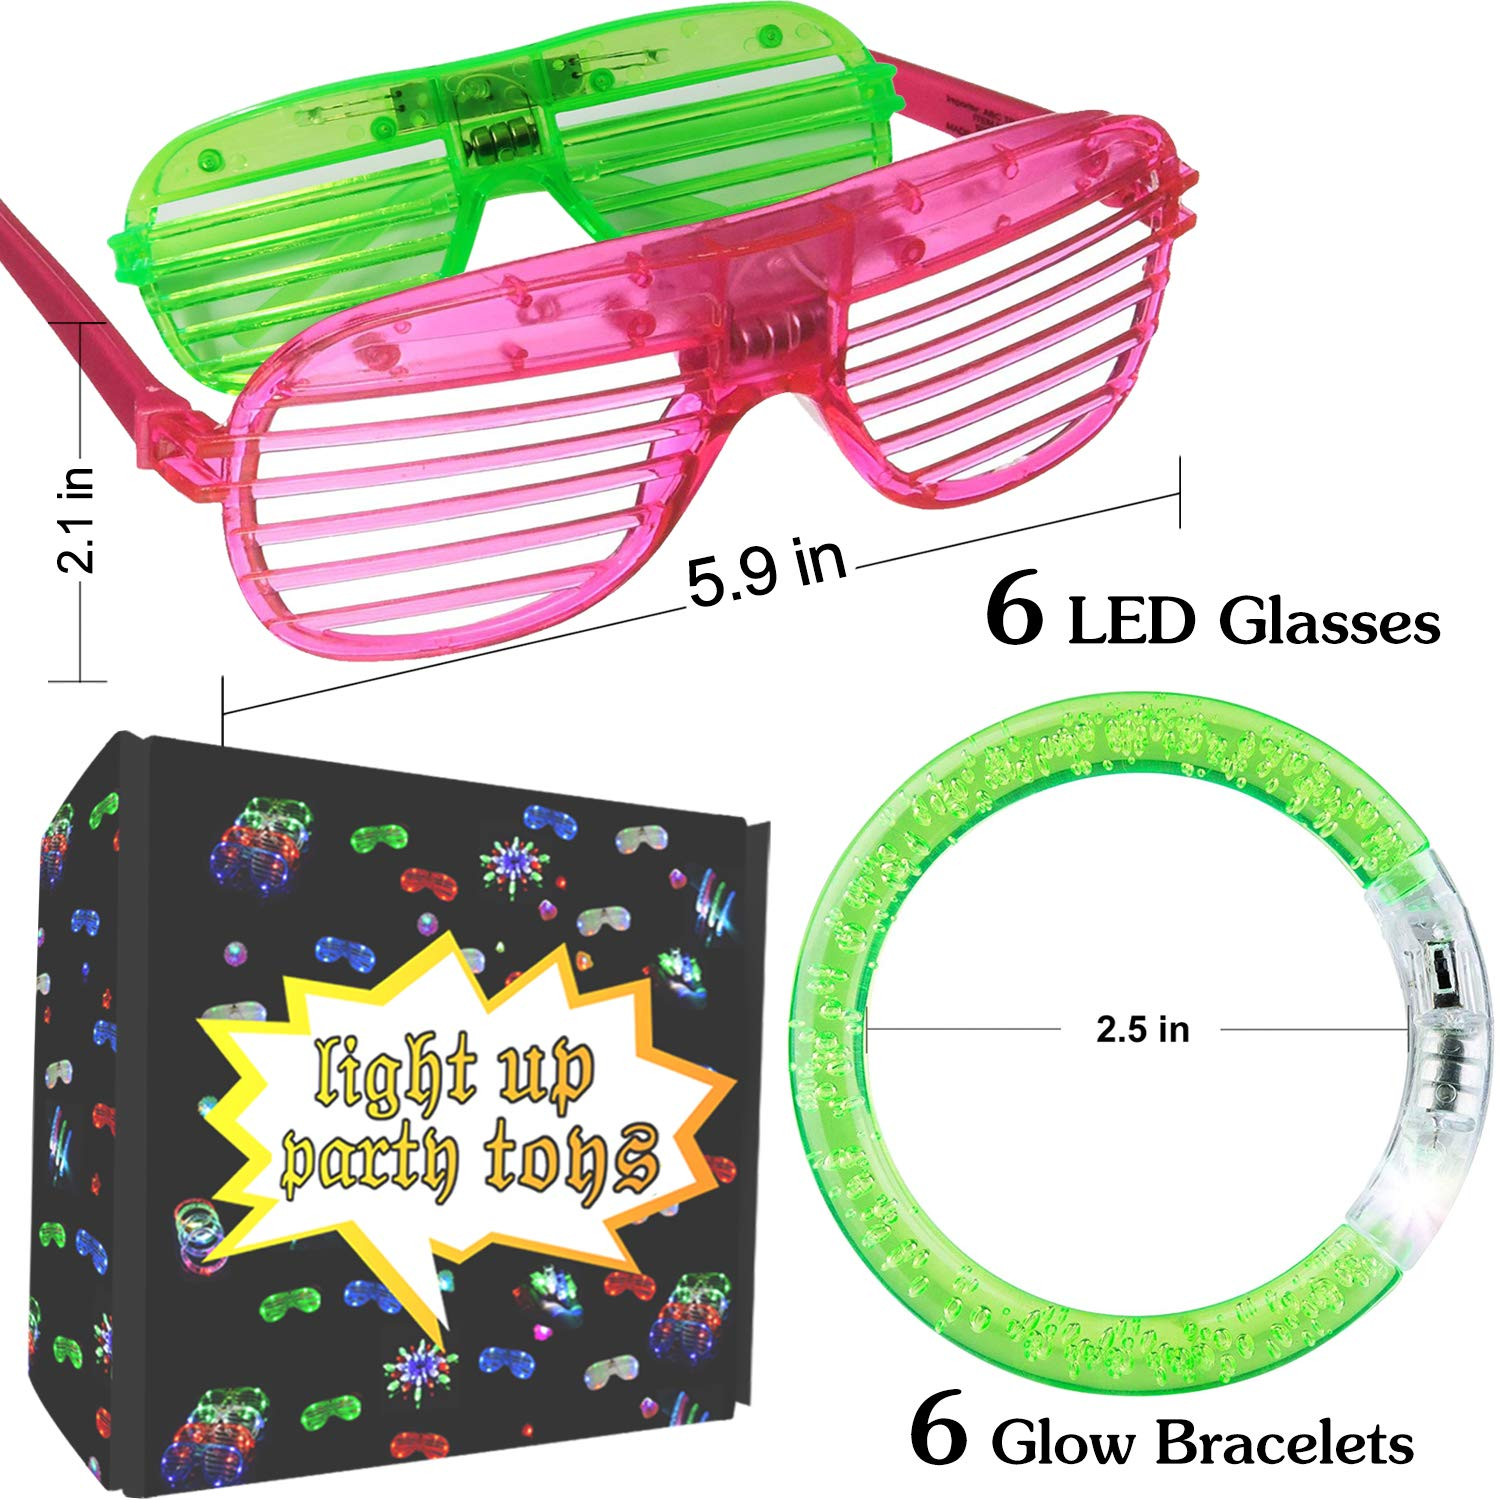 6687f505f46 Amazon.com  2019 Glow in The Dark Party Supplies 12 Pack Light Up Toys for  Easter Egg Easter Basket Stuffers Fillers Including 6 LED Flashing Glasses 6  ...